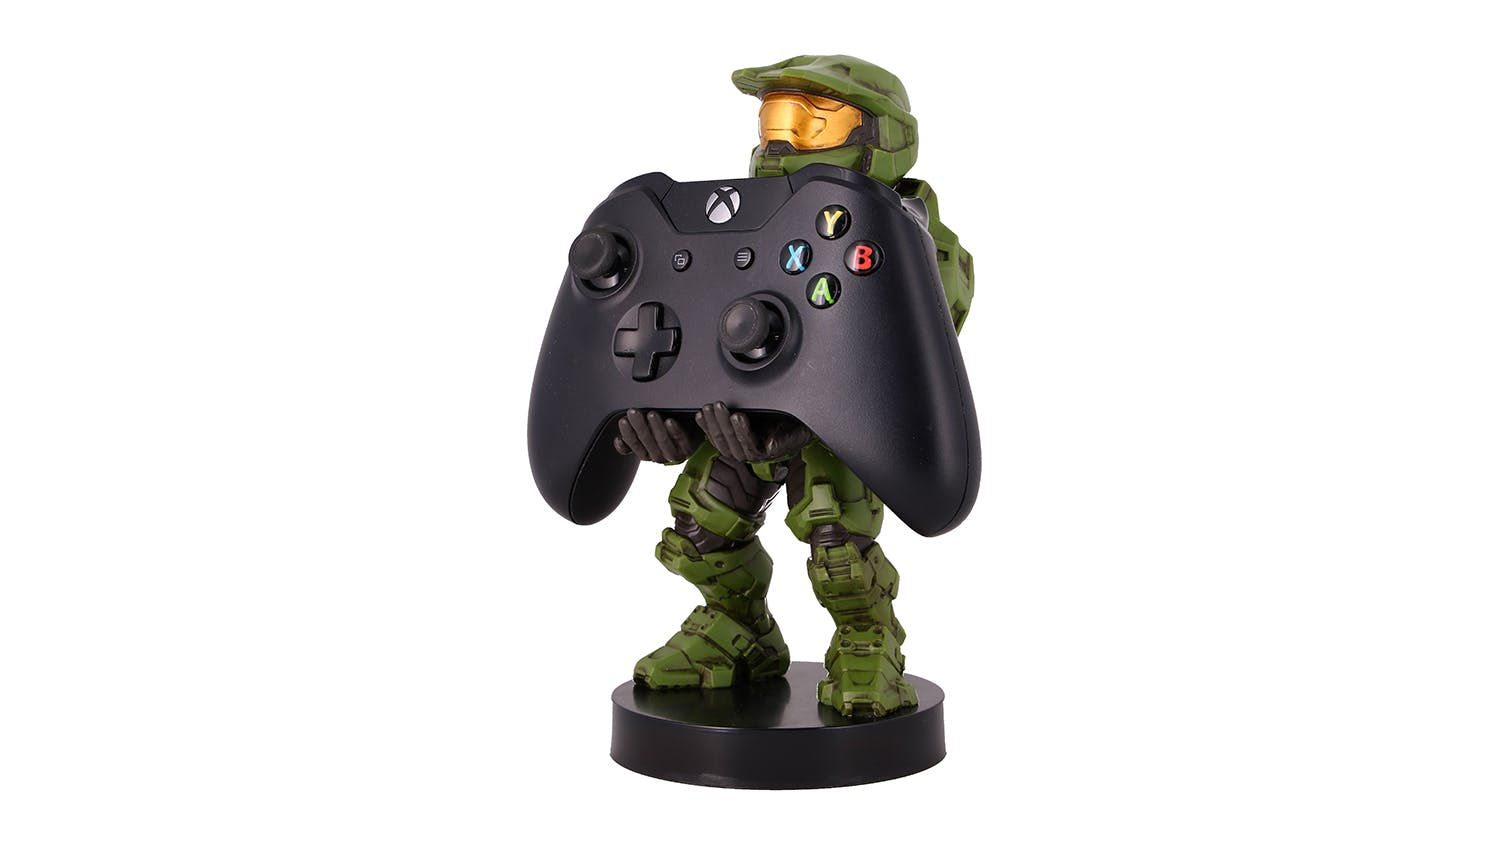 Cable Guys Phone/Controller Holder - Master Chief Infinite